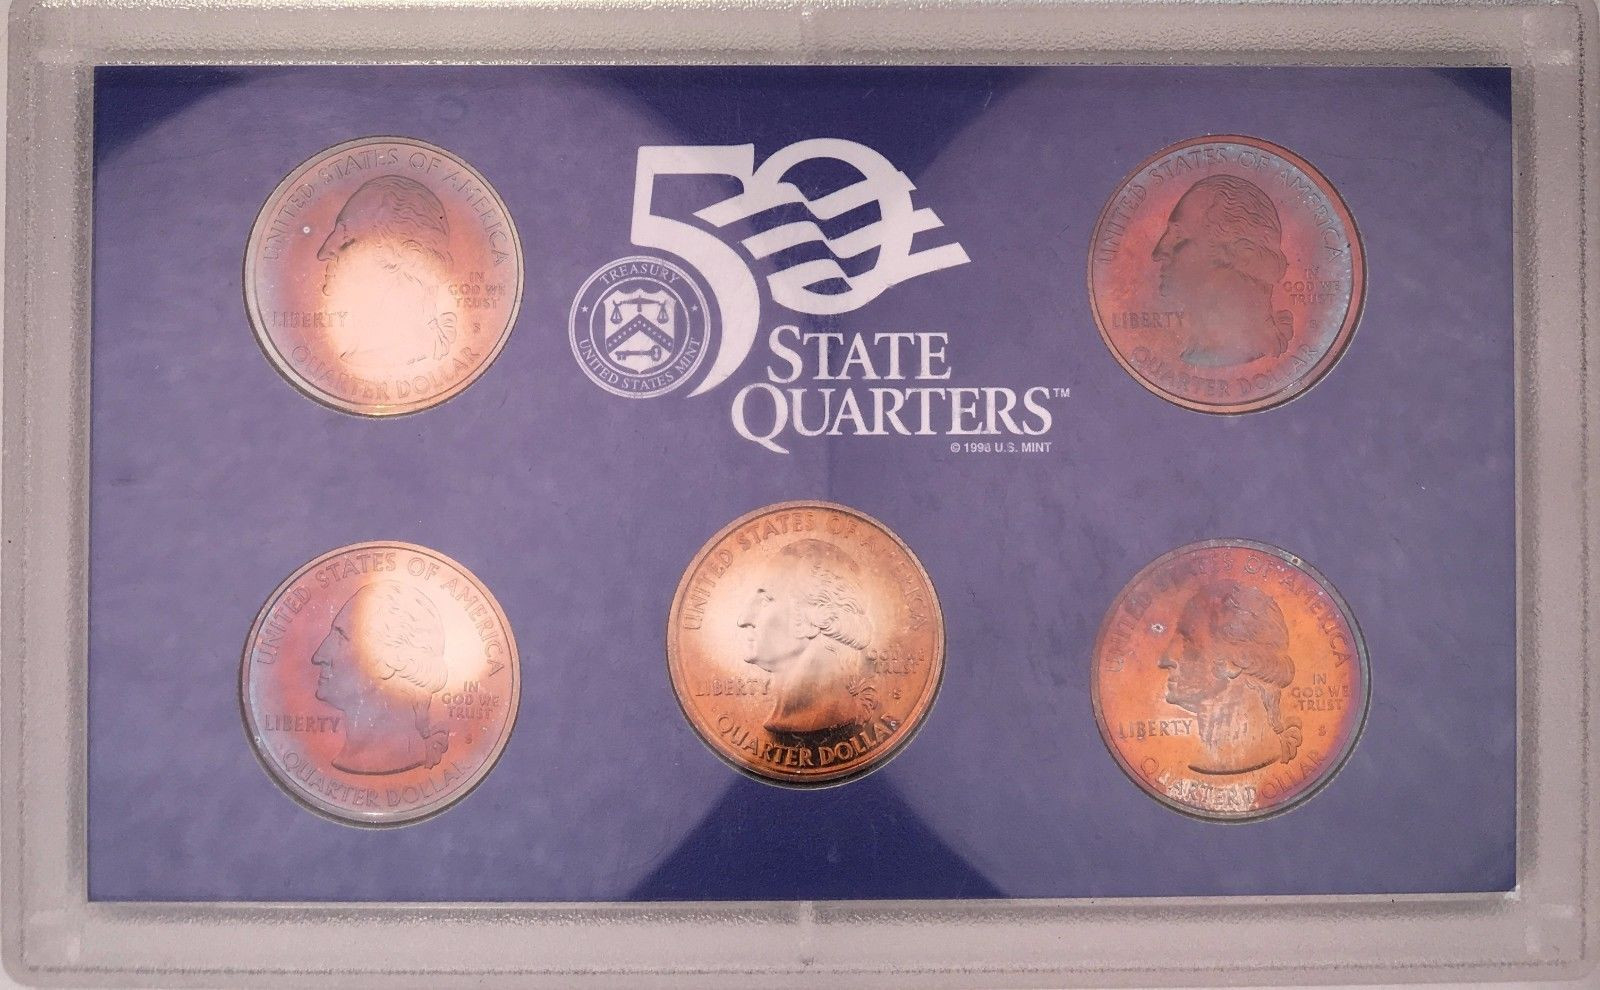 50 State Quarters New 2004 United States Mint 50 State Quarters Of Great 48 Images 50 State Quarters